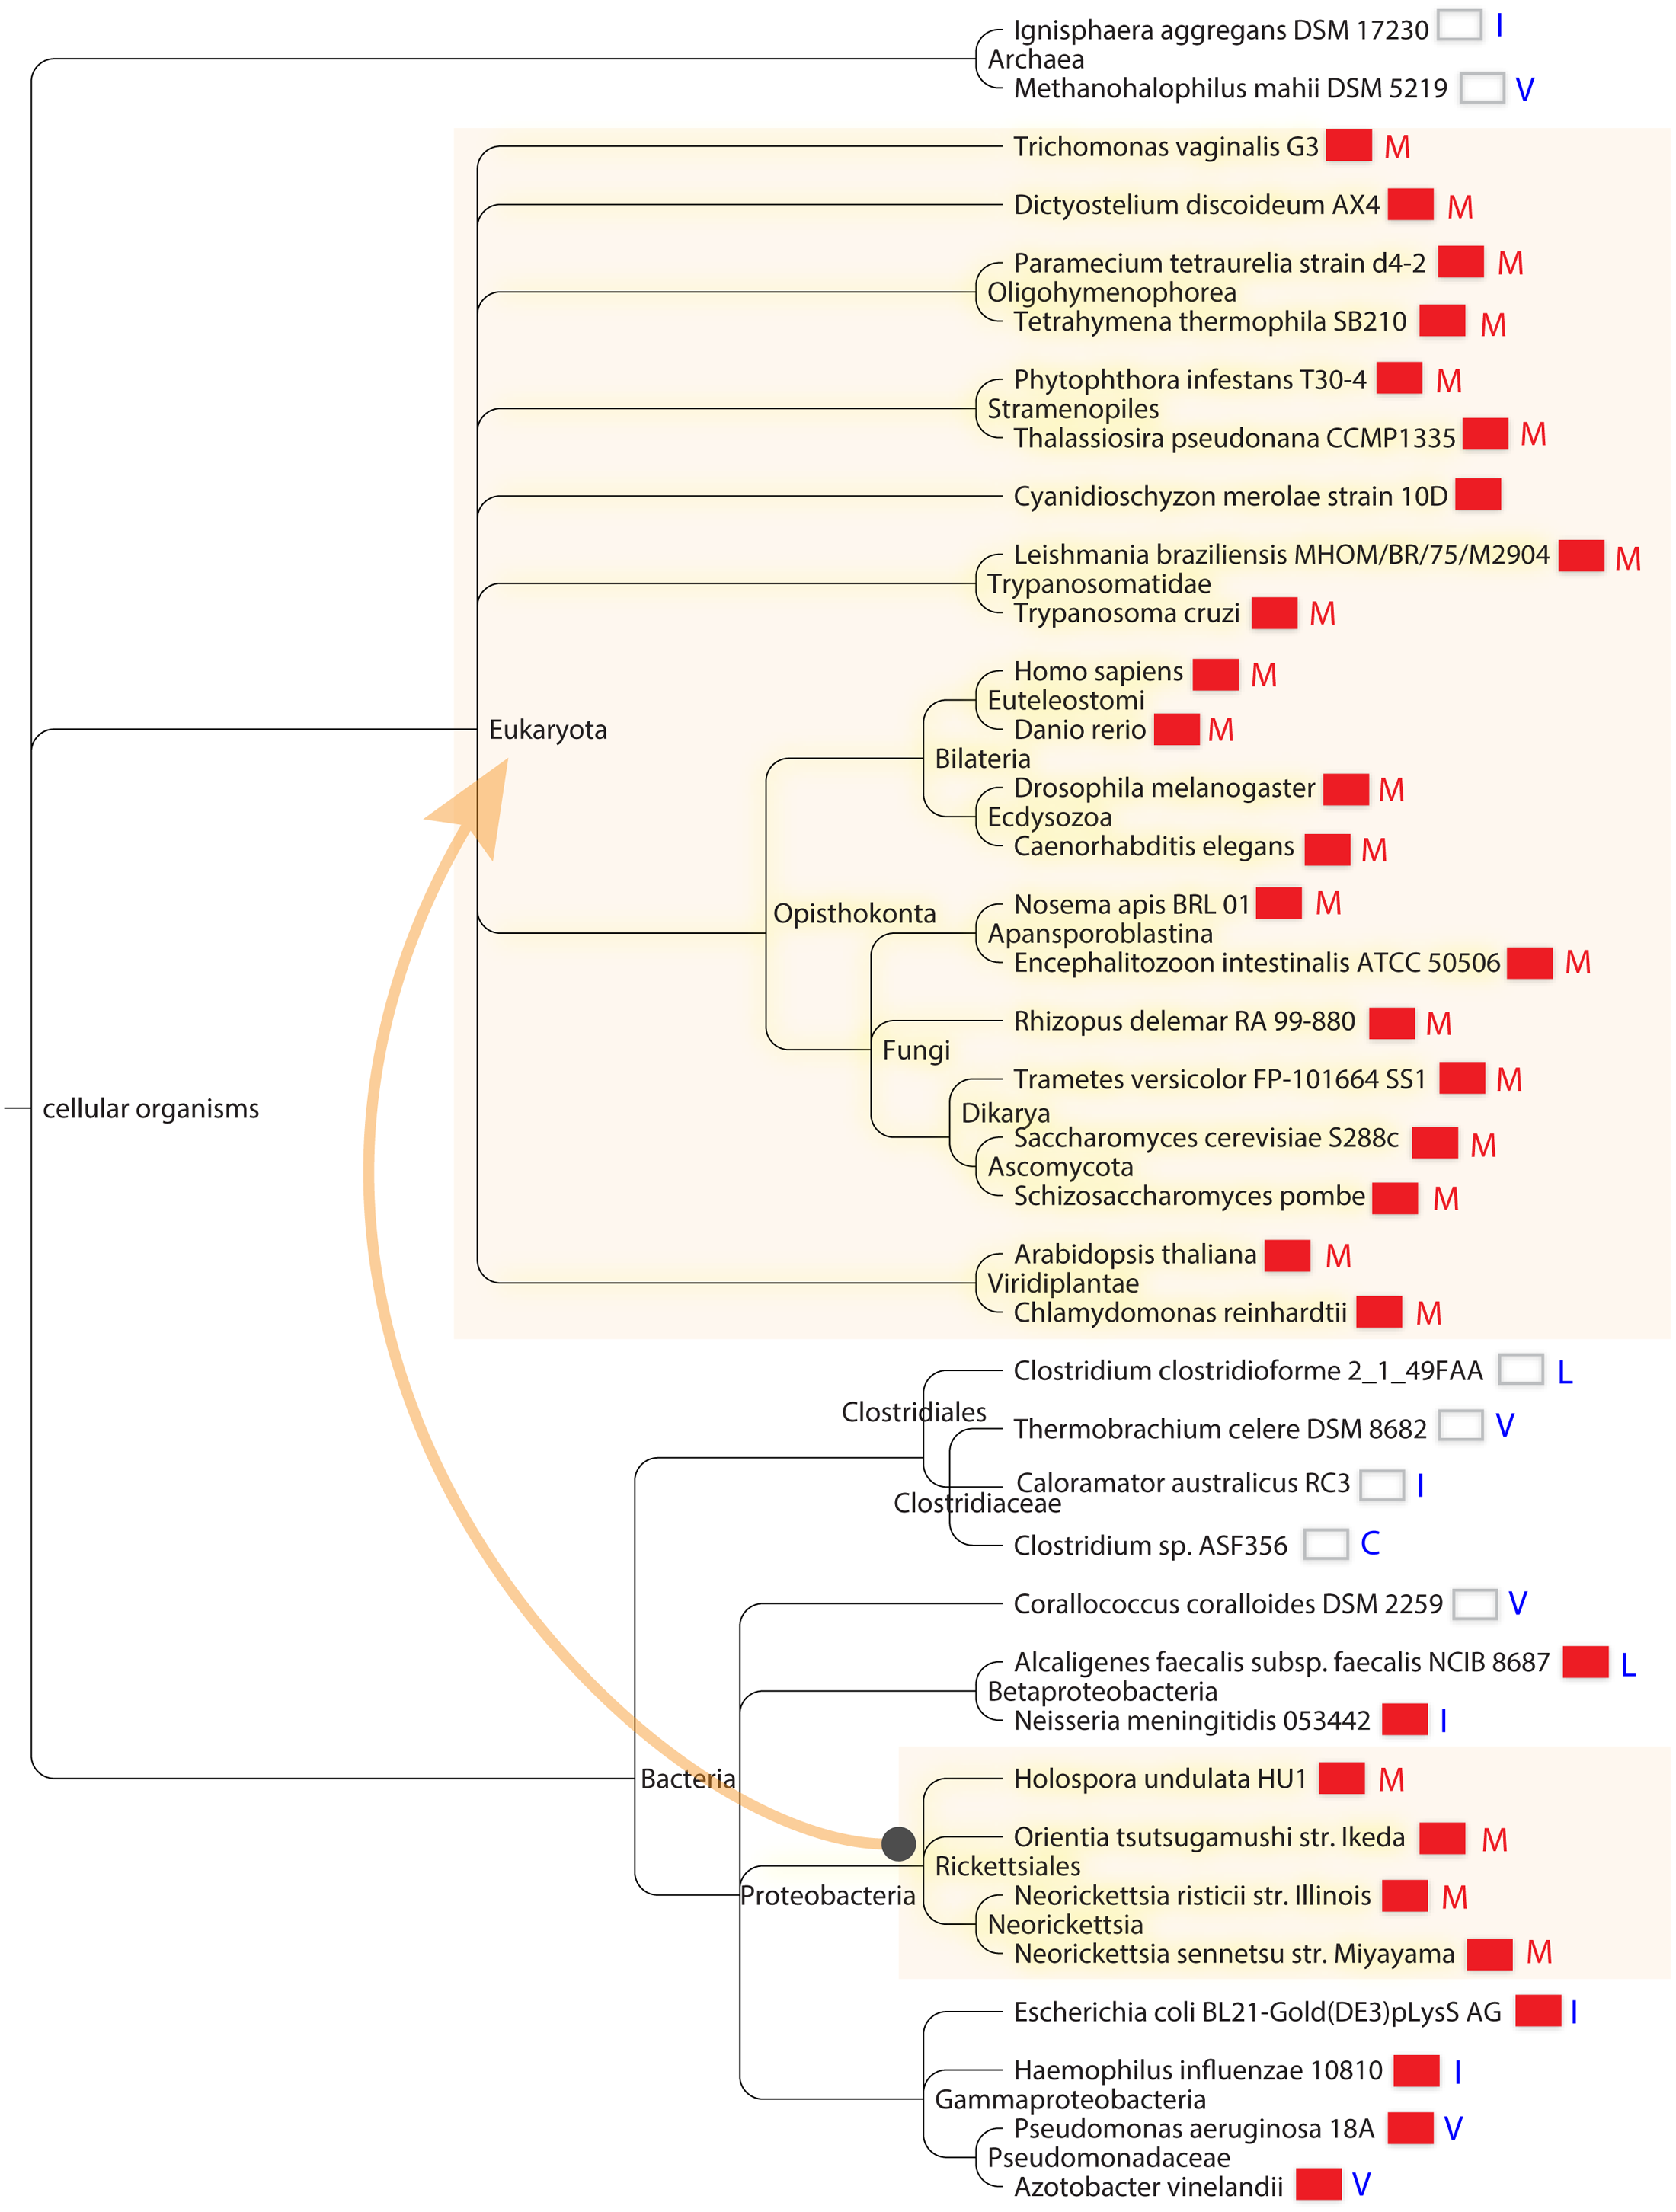 Cosegregation of Isu1/IscU-M and frataxin in global taxonomy.